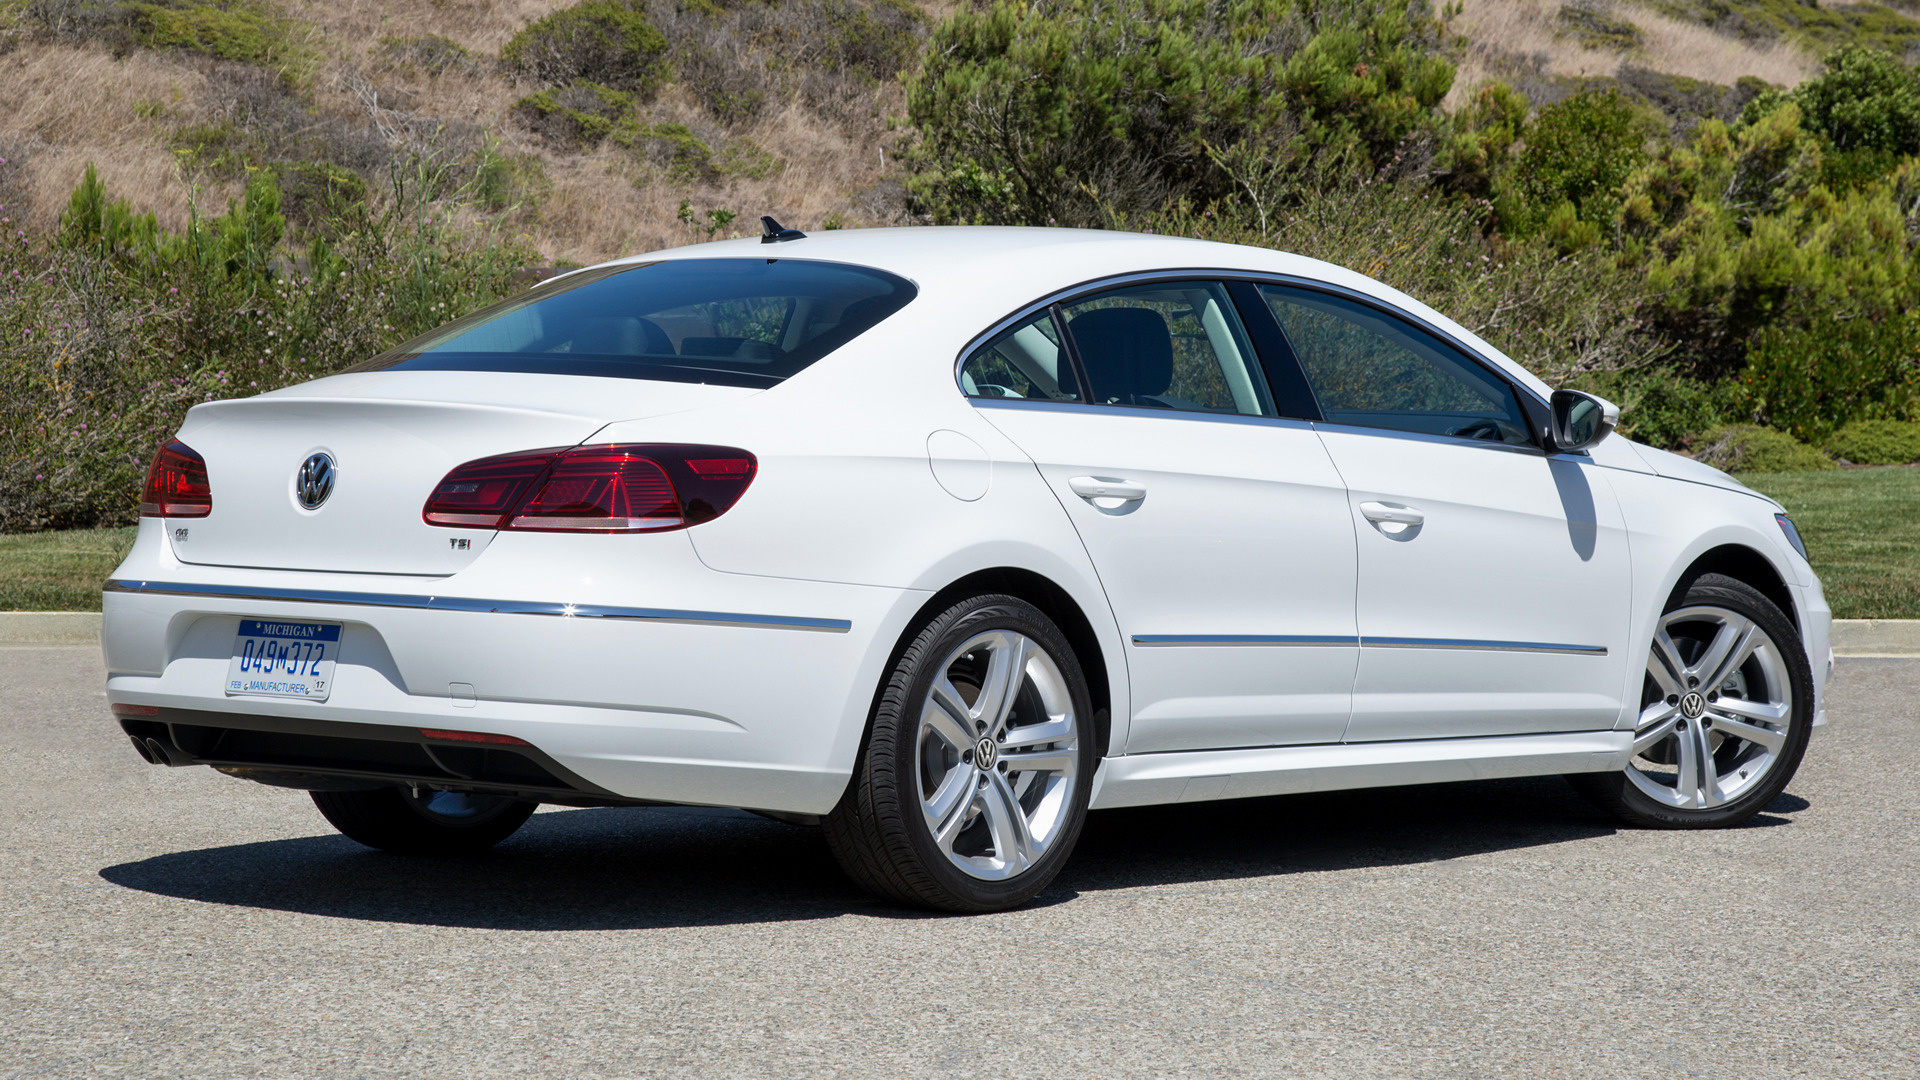 volkswagen cc r line 2013 us wallpapers and hd images car pixel. Black Bedroom Furniture Sets. Home Design Ideas